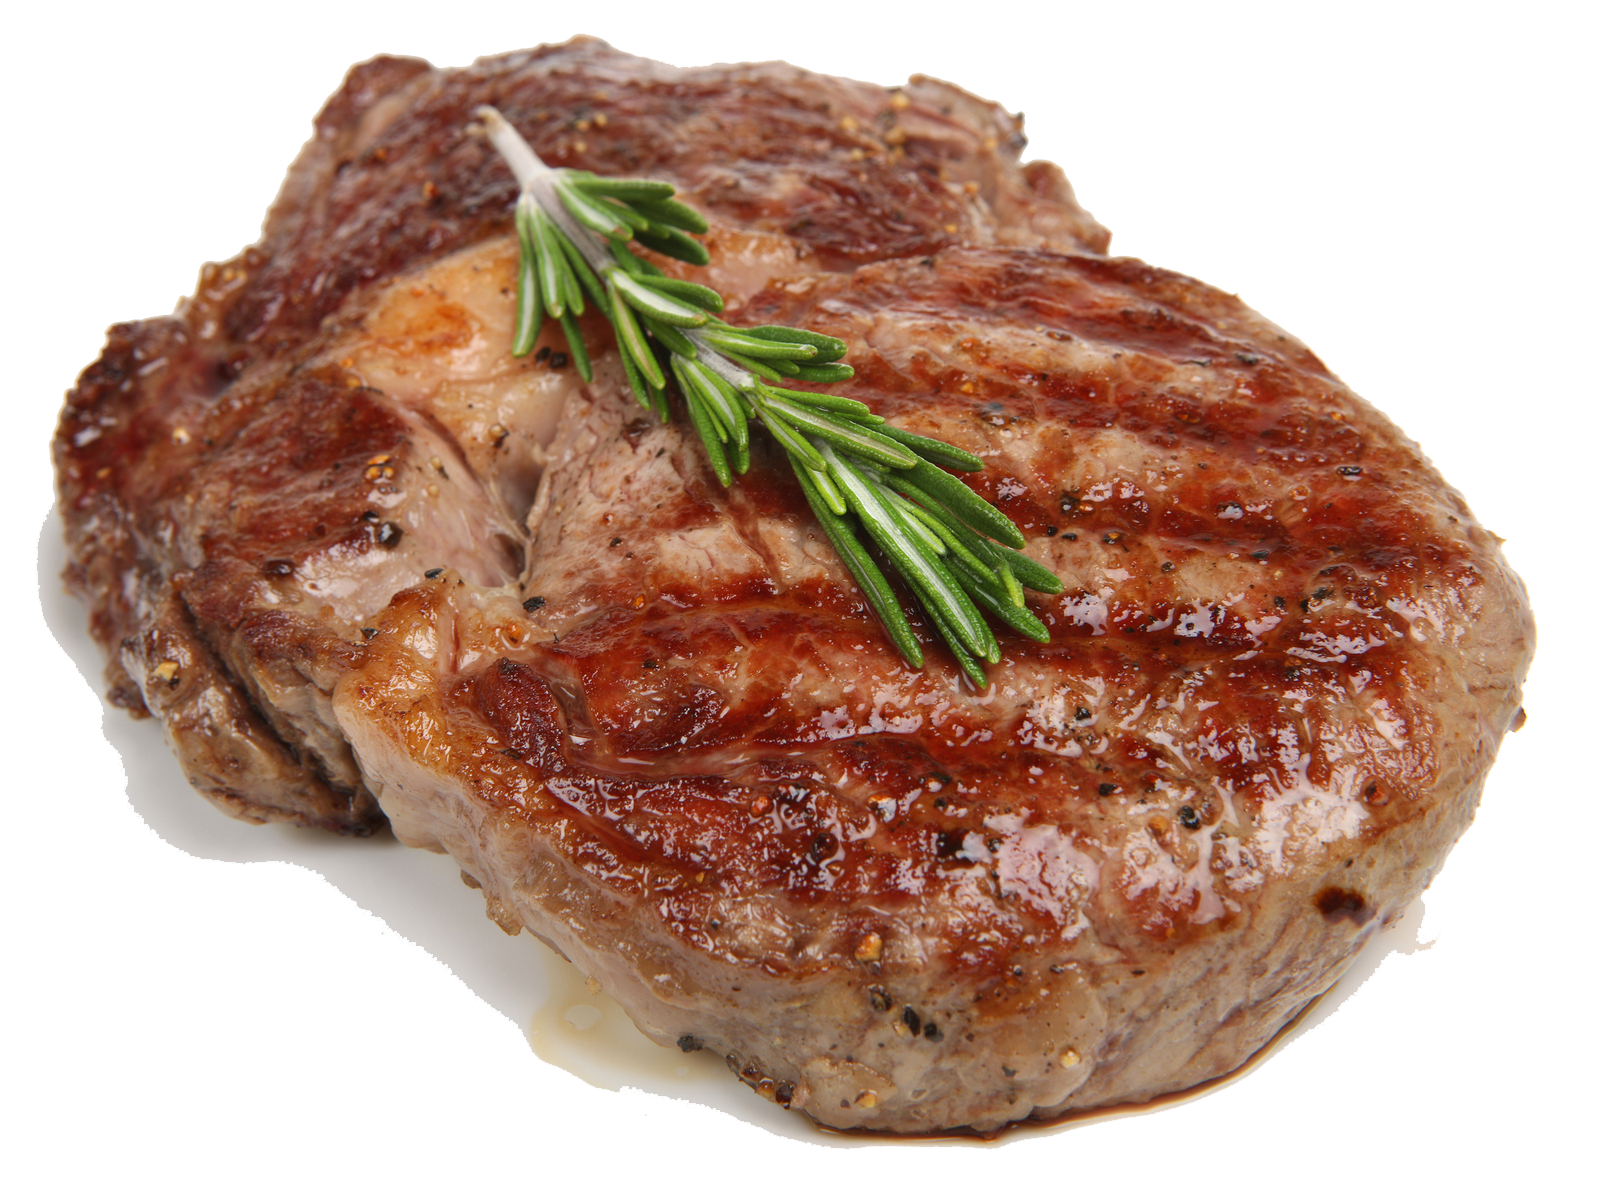 Cooked Meat Png - Download Cooked Meat HQ PNG Image | FreePNGImg